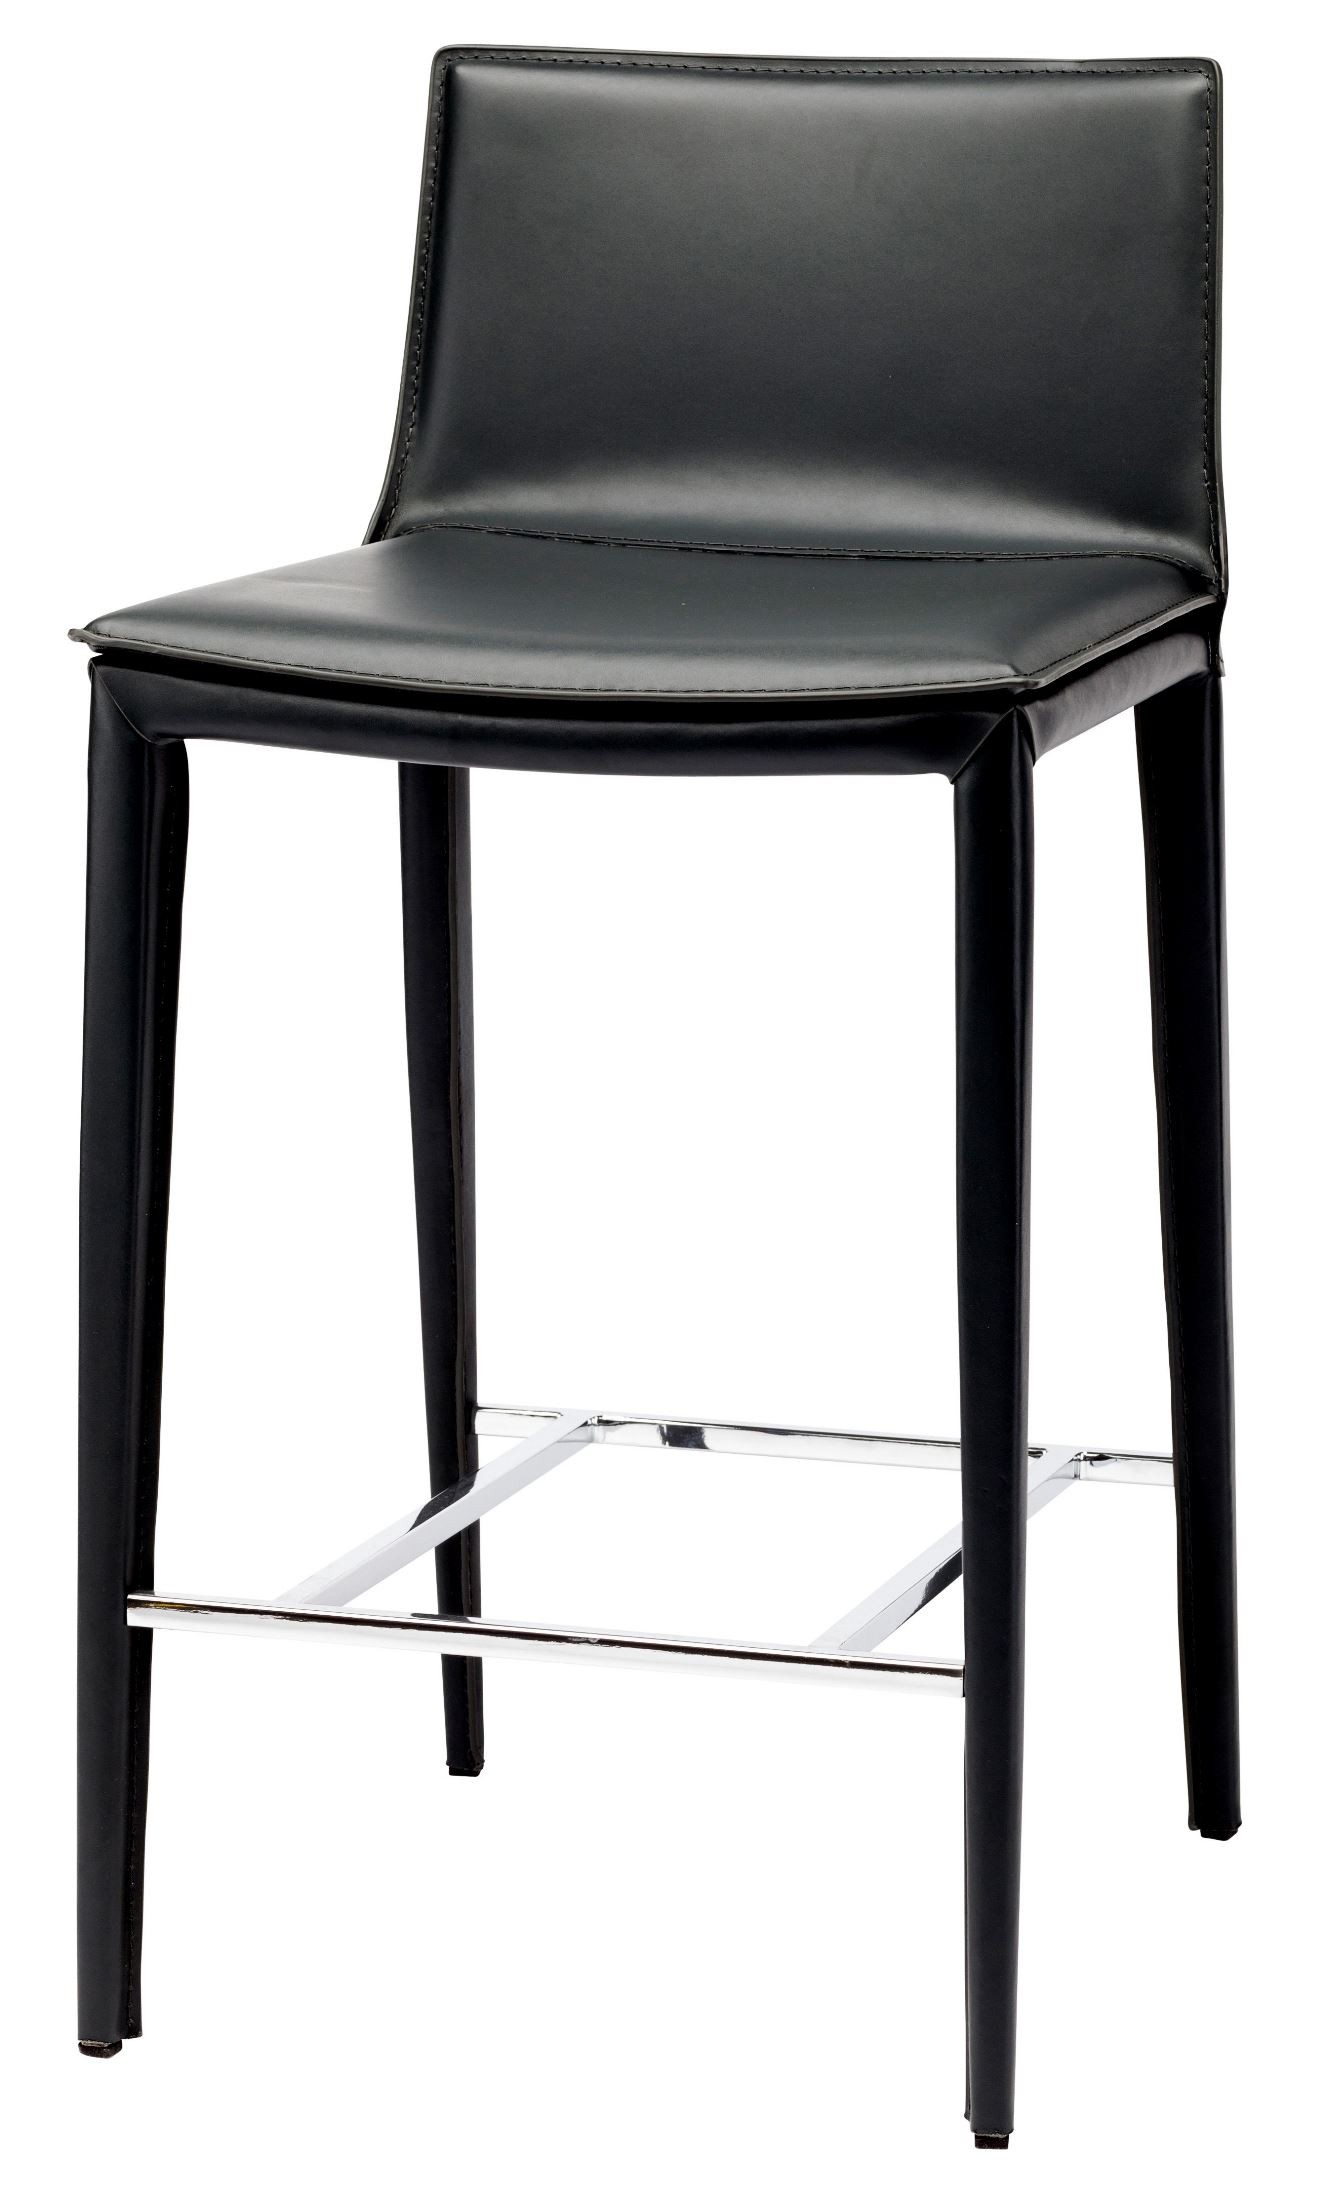 Palma Black Leather Counter Stool Hgnd112 Nuevo